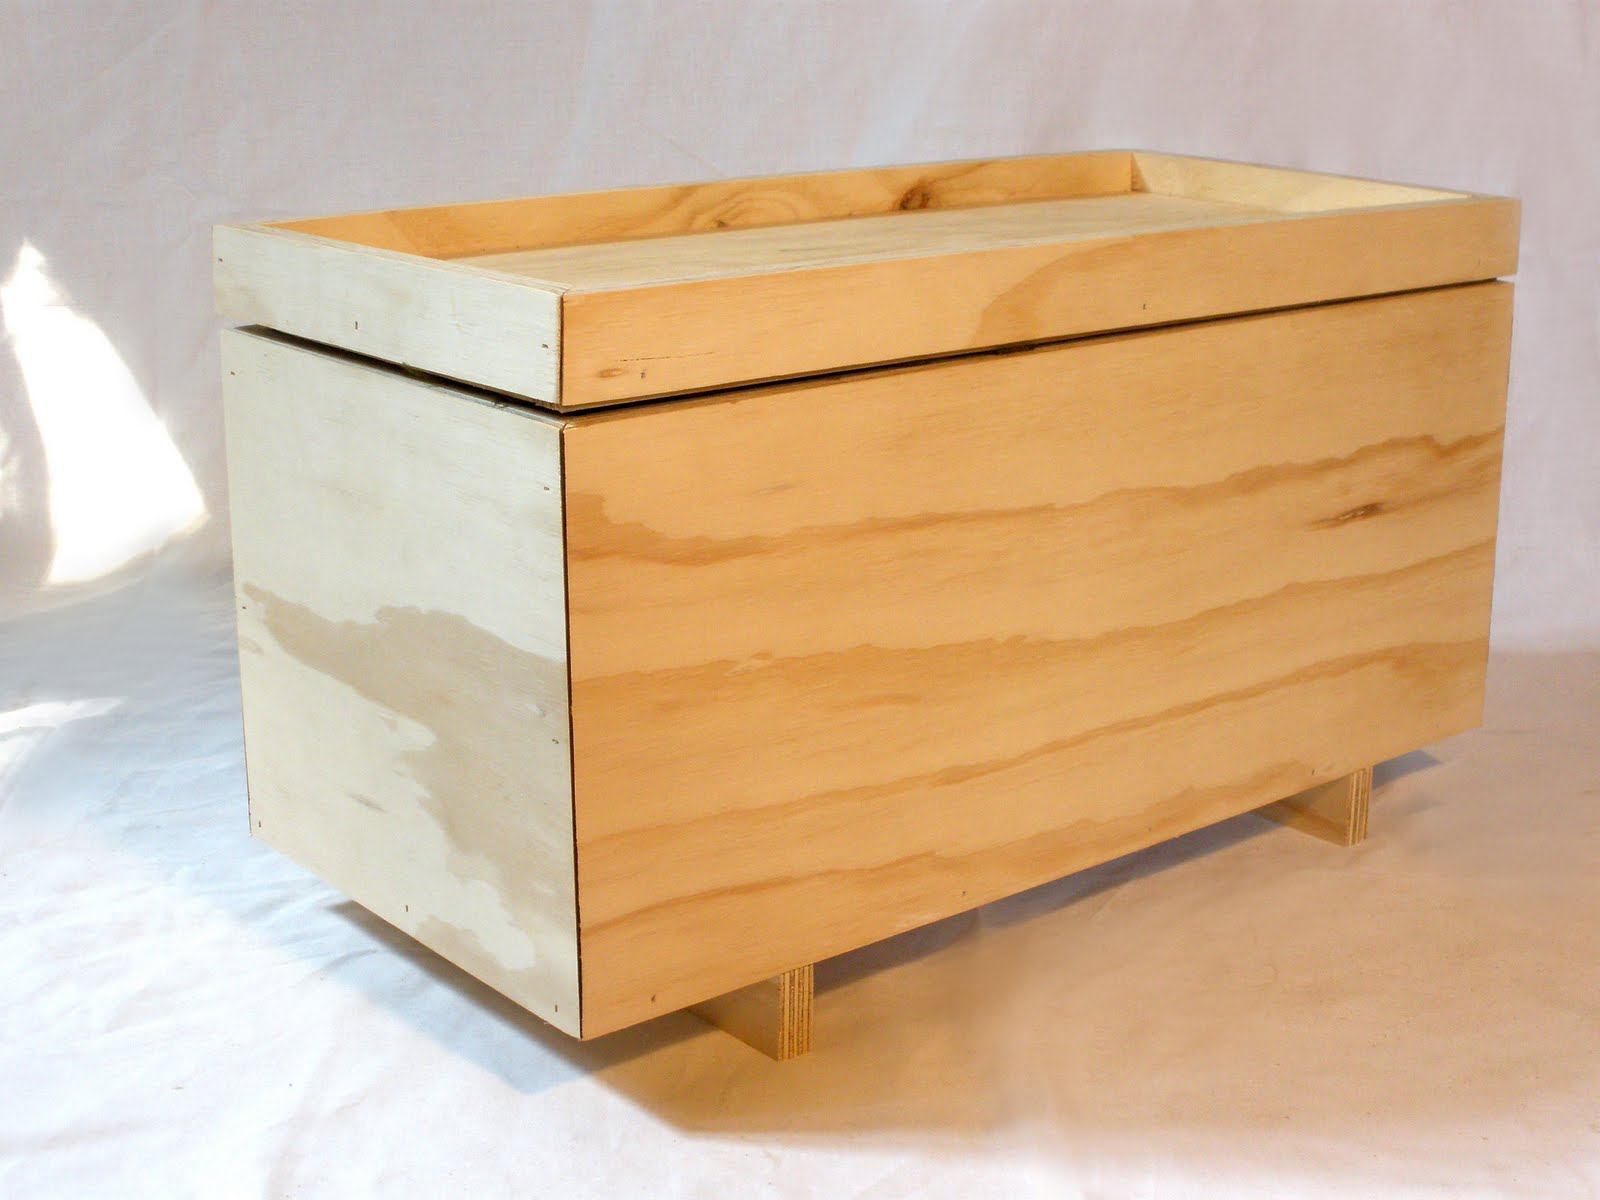 Plywood CabiBoxes